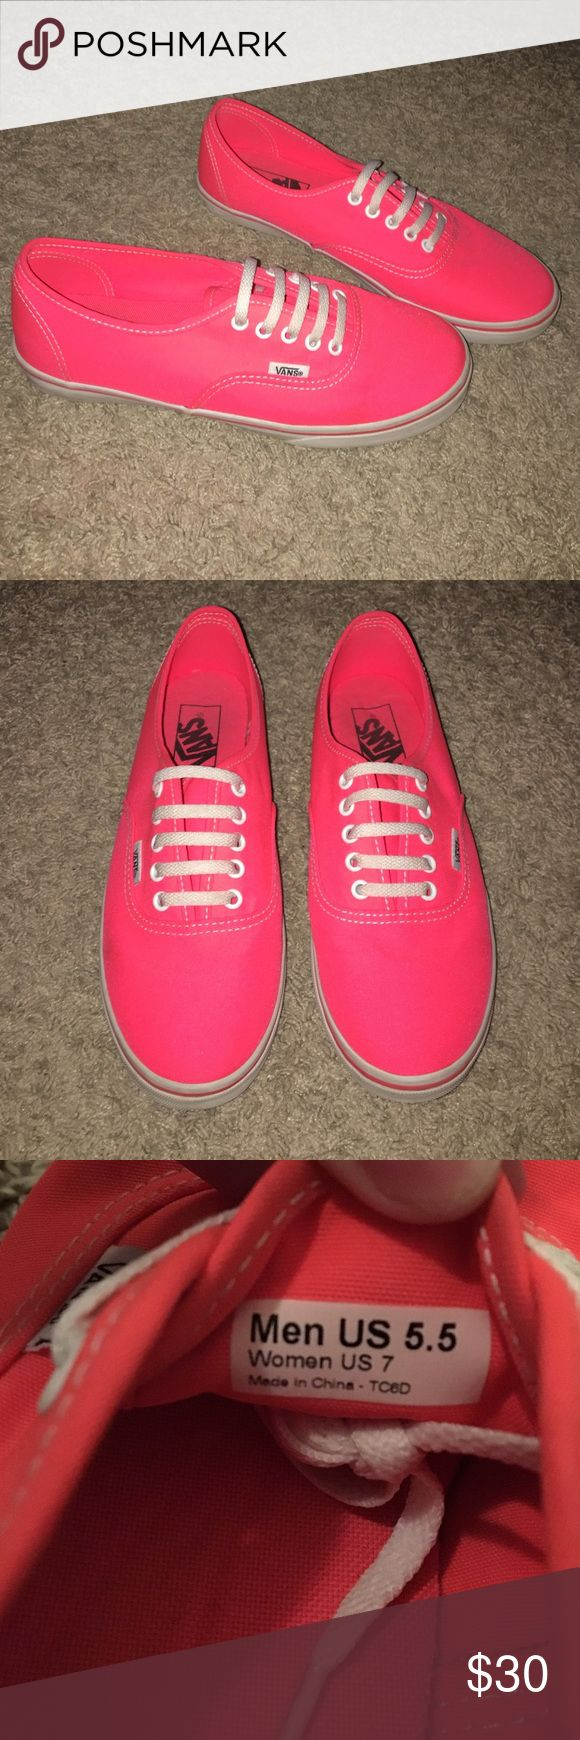 Neon pink/coral vans These are a very bright coral/pink neon vans. They were very lightly worn, but sadly I grew out them. Price negotiable. Vans Shoes